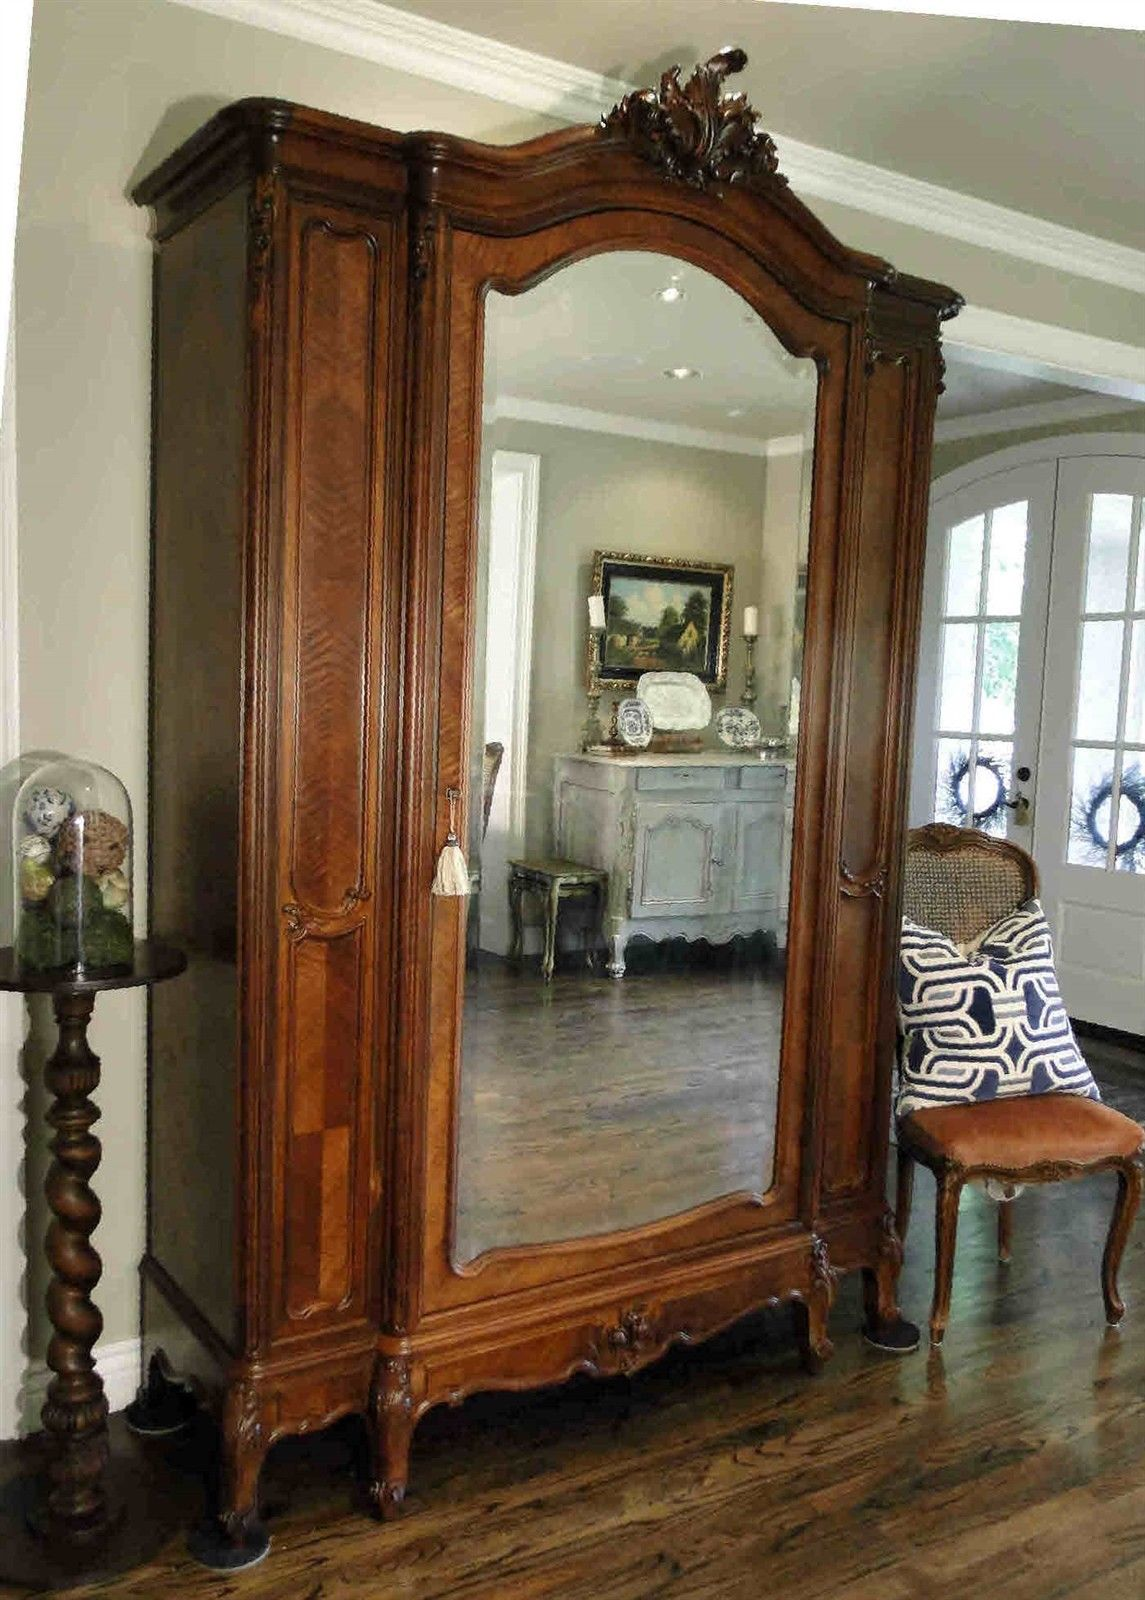 Antique French Armoire Wardrobe Large Beveled Mirror Walnut Carving c1920's key